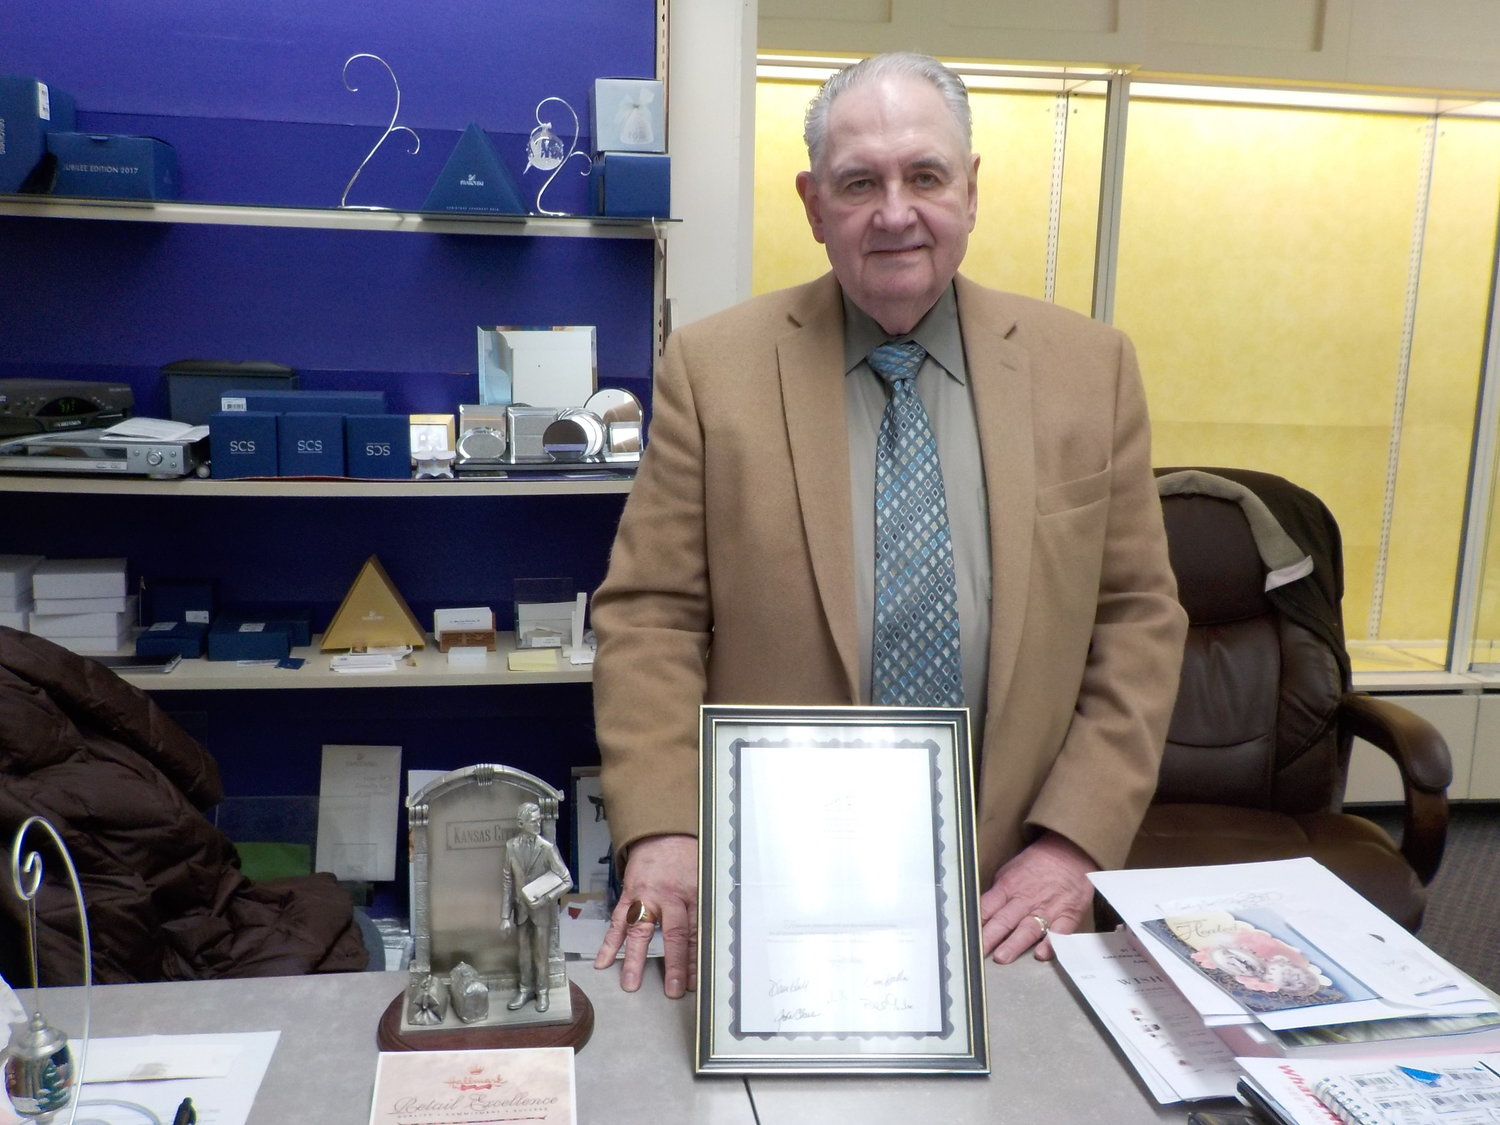 Gaylor displayed documents and awards that the Lyn Gift Shop had earned over the years for excellence in retail as a Hallmark store. He died on Nov. 28 at 79, but leaves behind a legacy in the village.